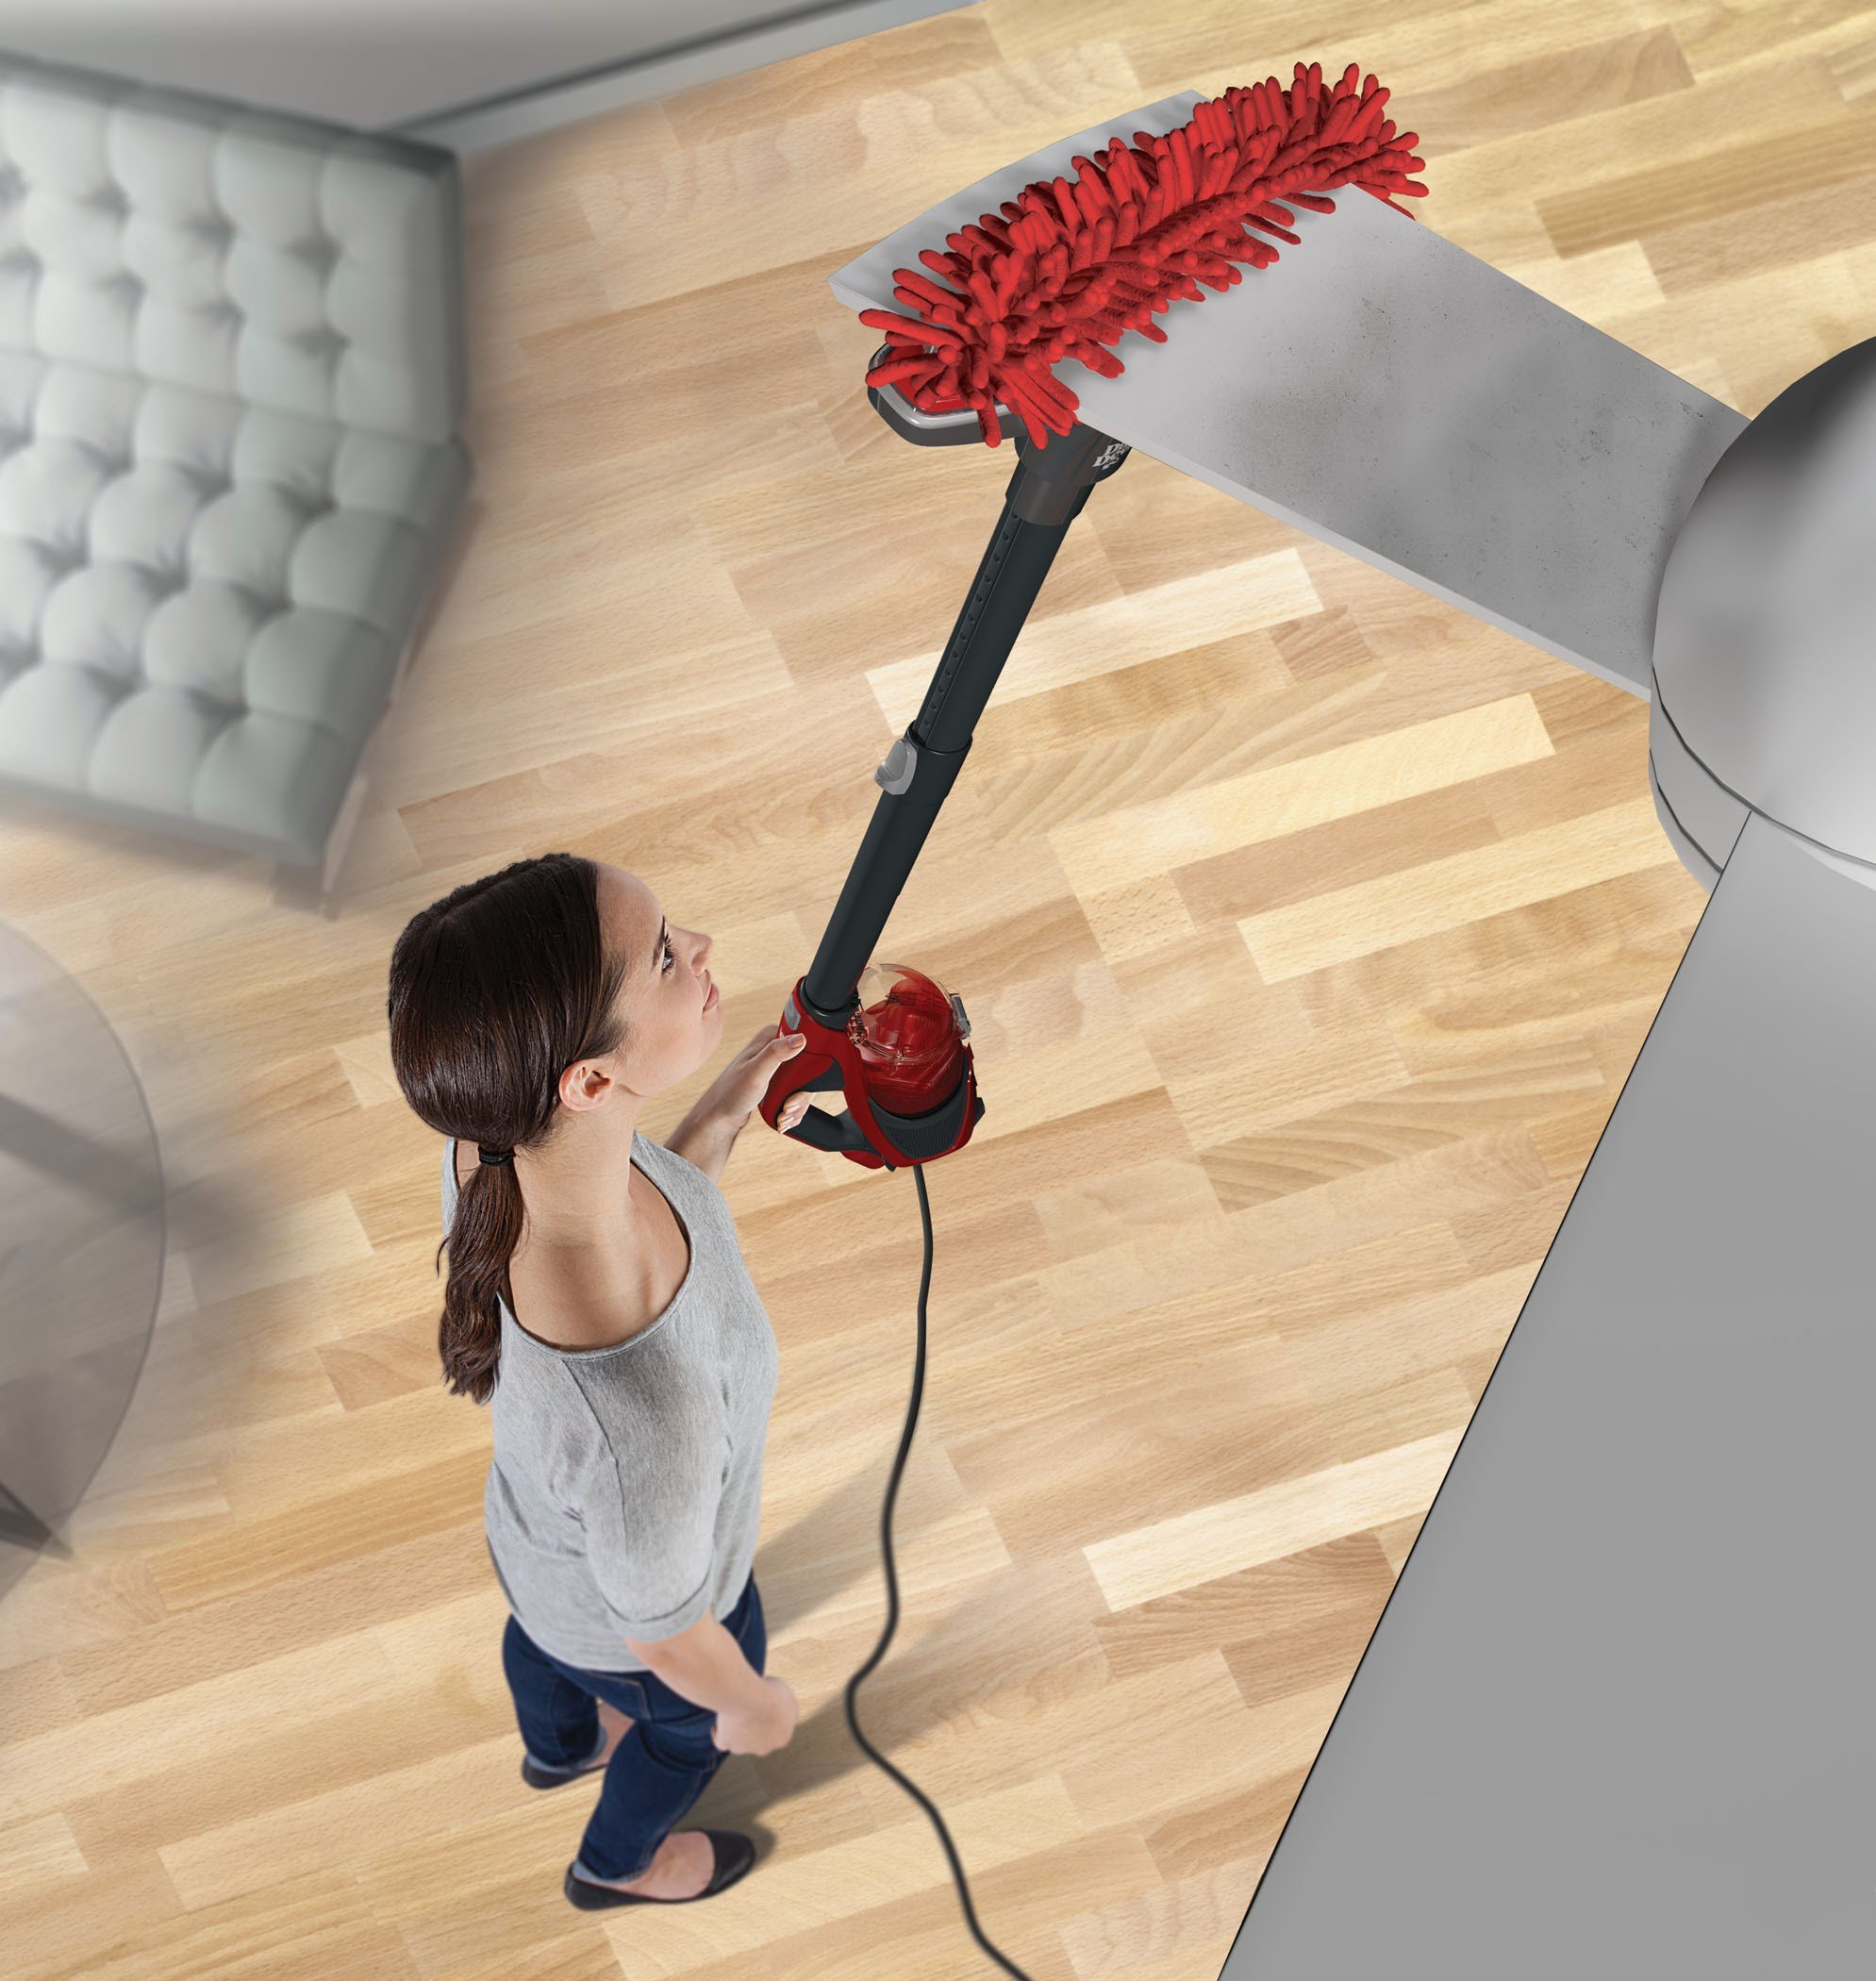 Dirt Devil Vacuum Cleaner 360 Reach Pro Corded Bagless Stick and Handheld Vacuum SD12515B by Dirt Devil (Image #9)